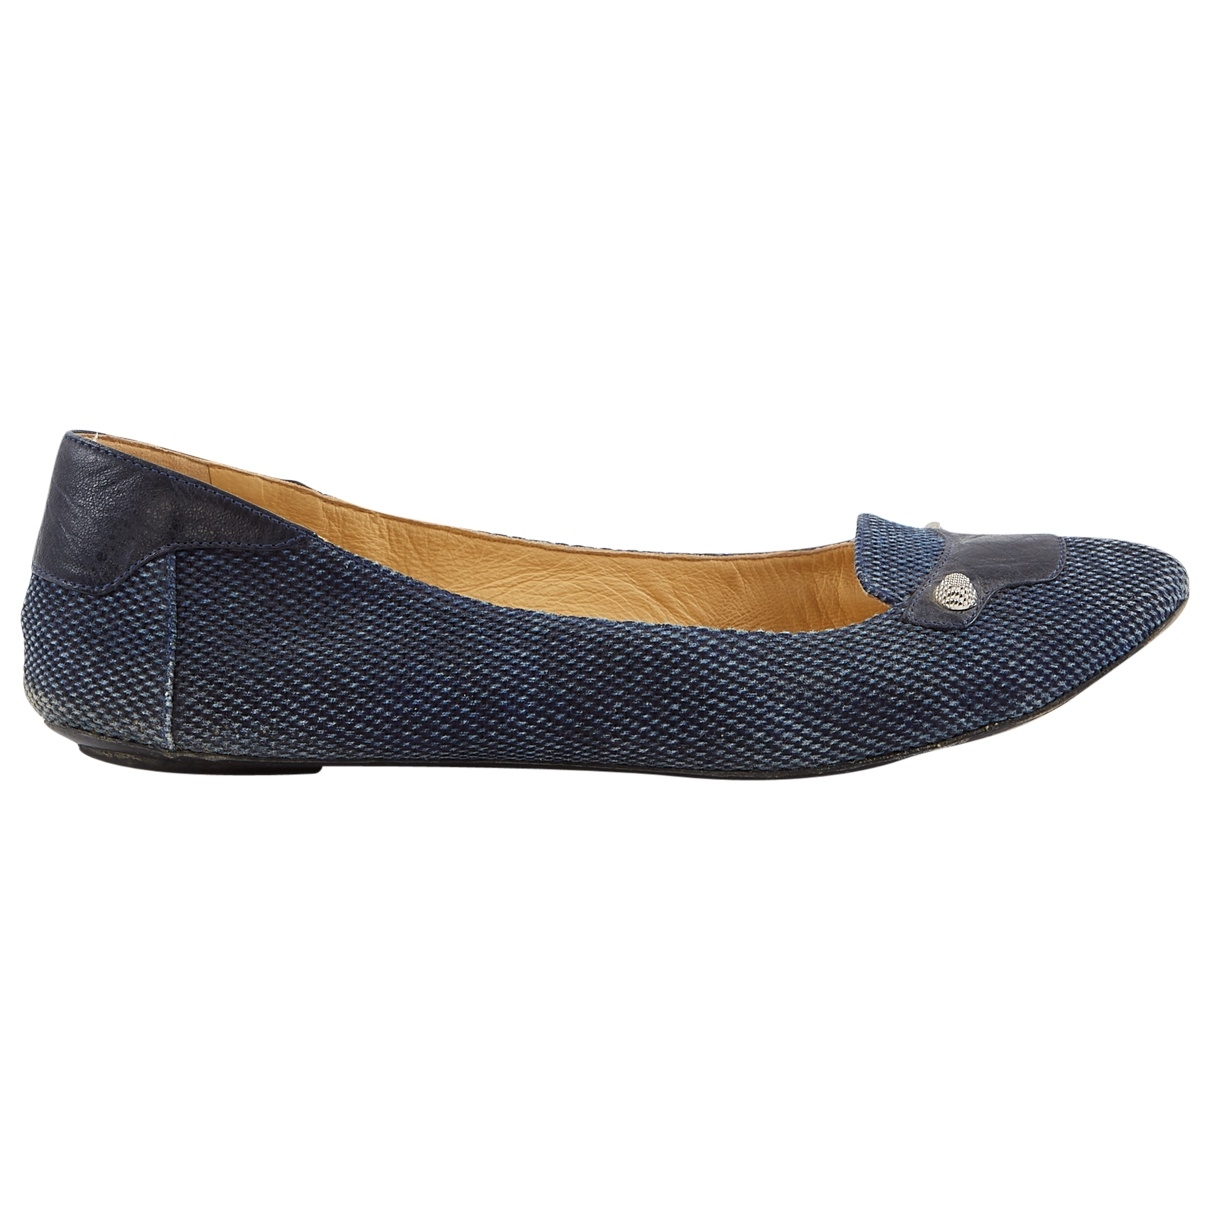 Balenciaga N Navy Cloth Ballet flats for Women 41 EU